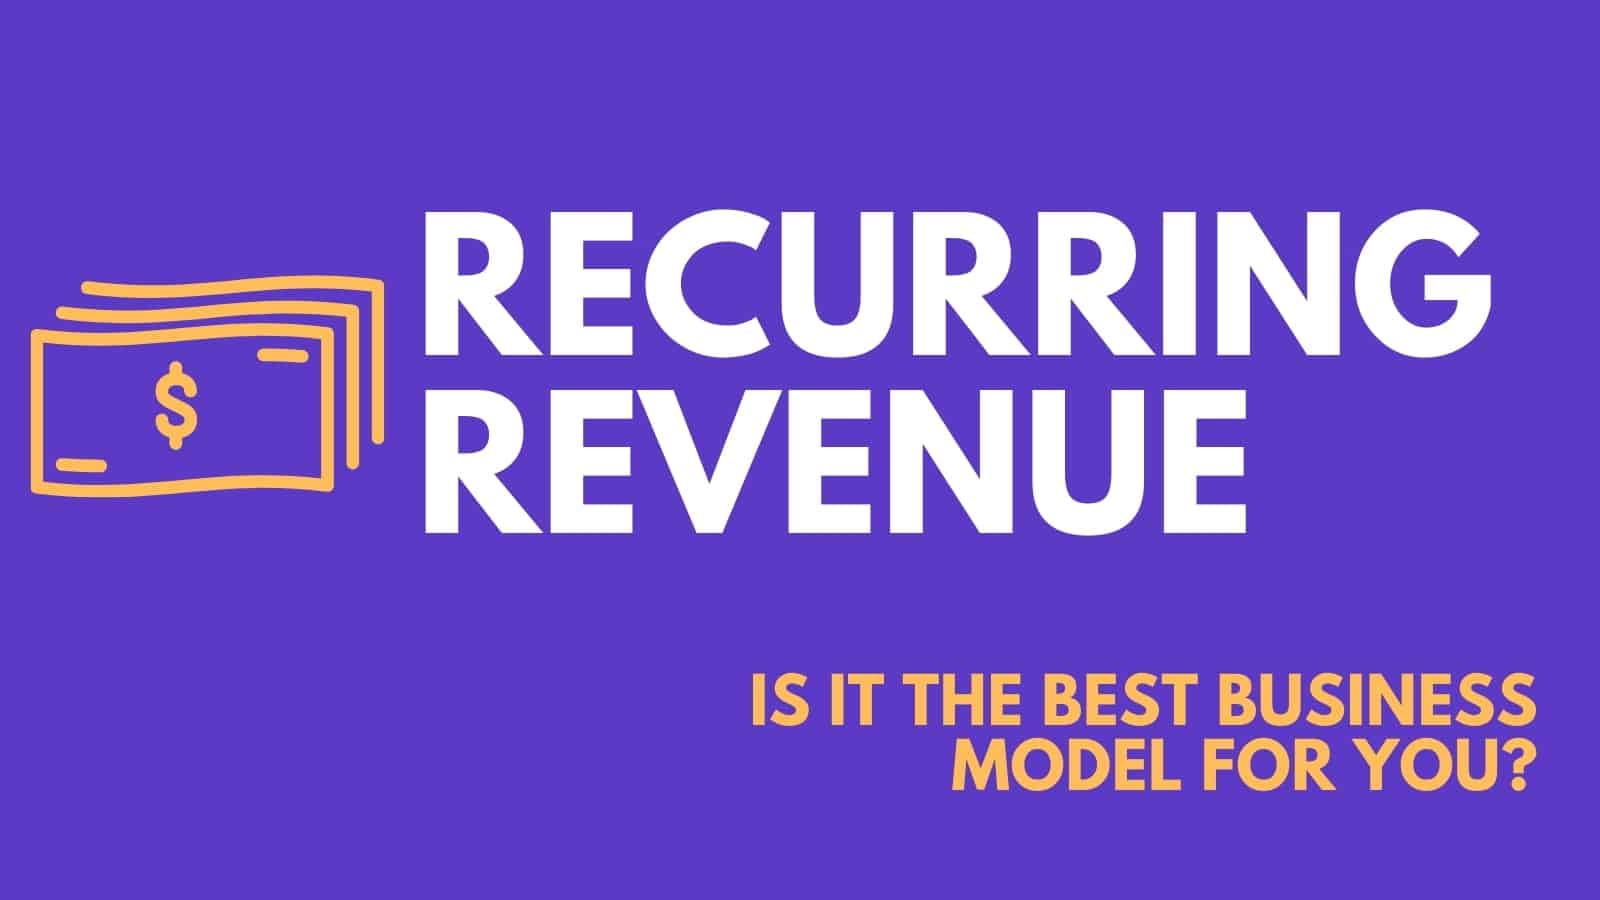 Recurring Revenue: The Best Business Model?